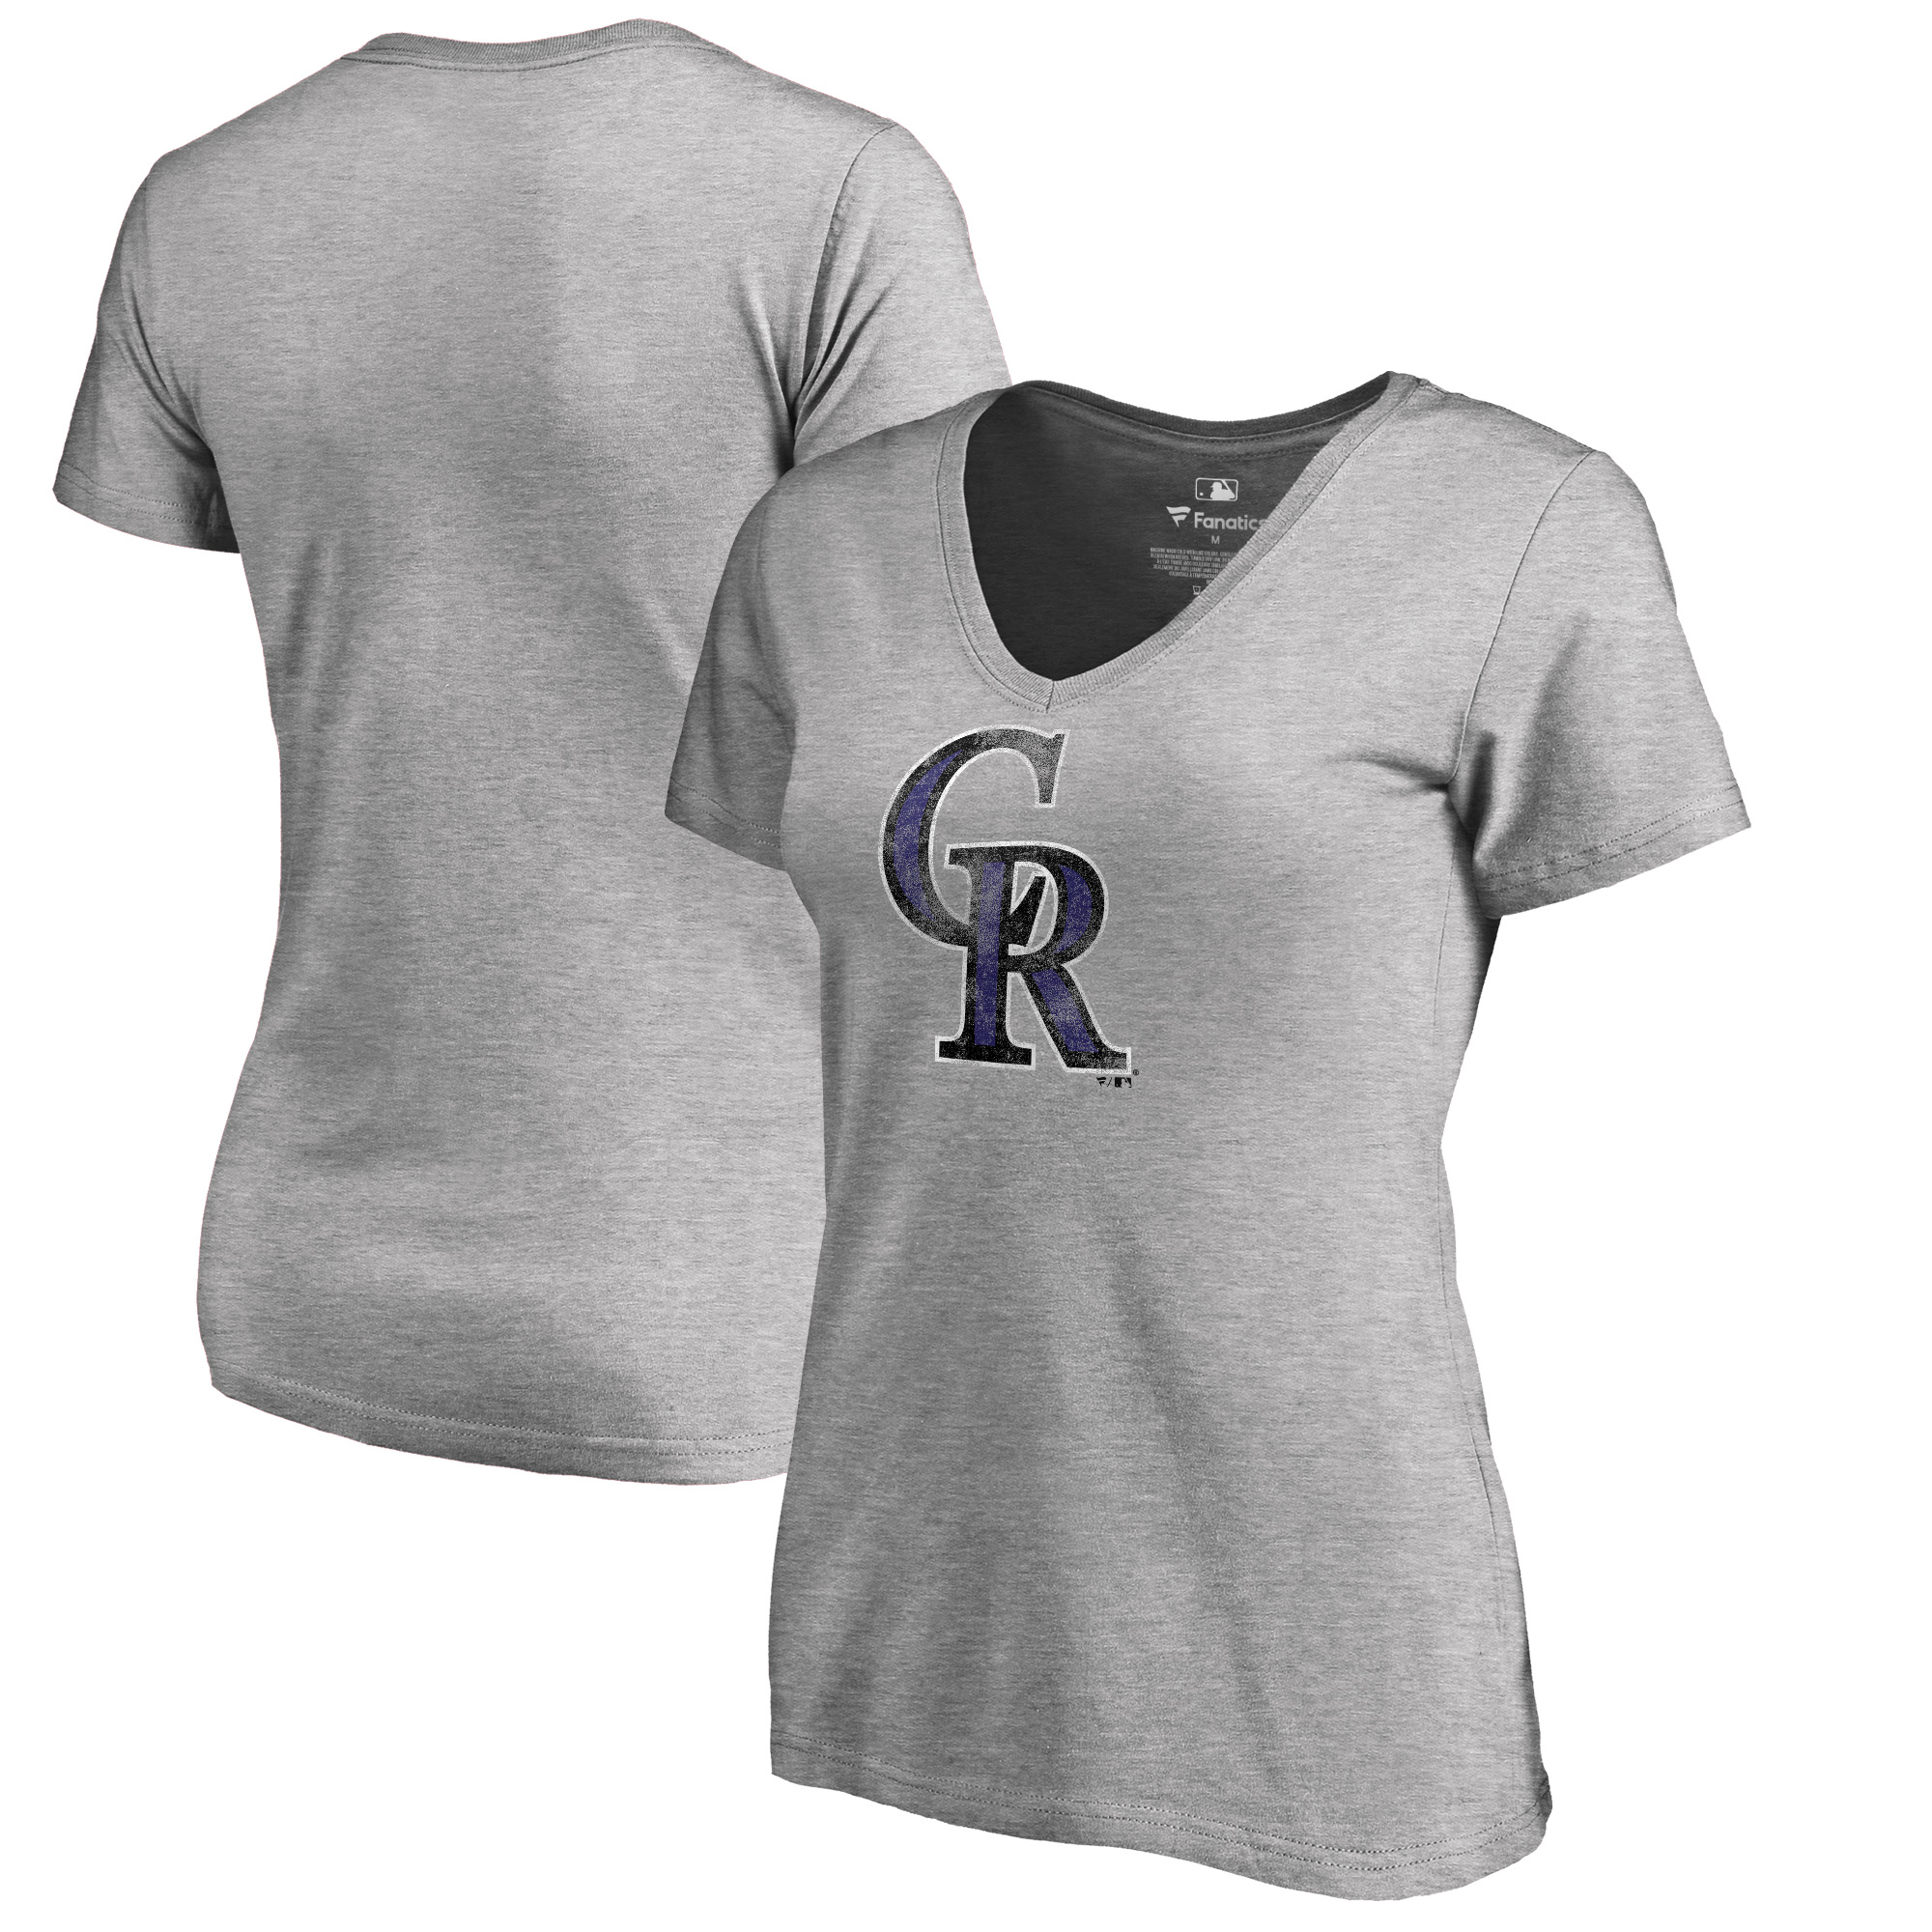 Colorado Rockies Fanatics Branded Women's Plus Size Distressed Team V-Neck T-Shirt - Heathered Gray